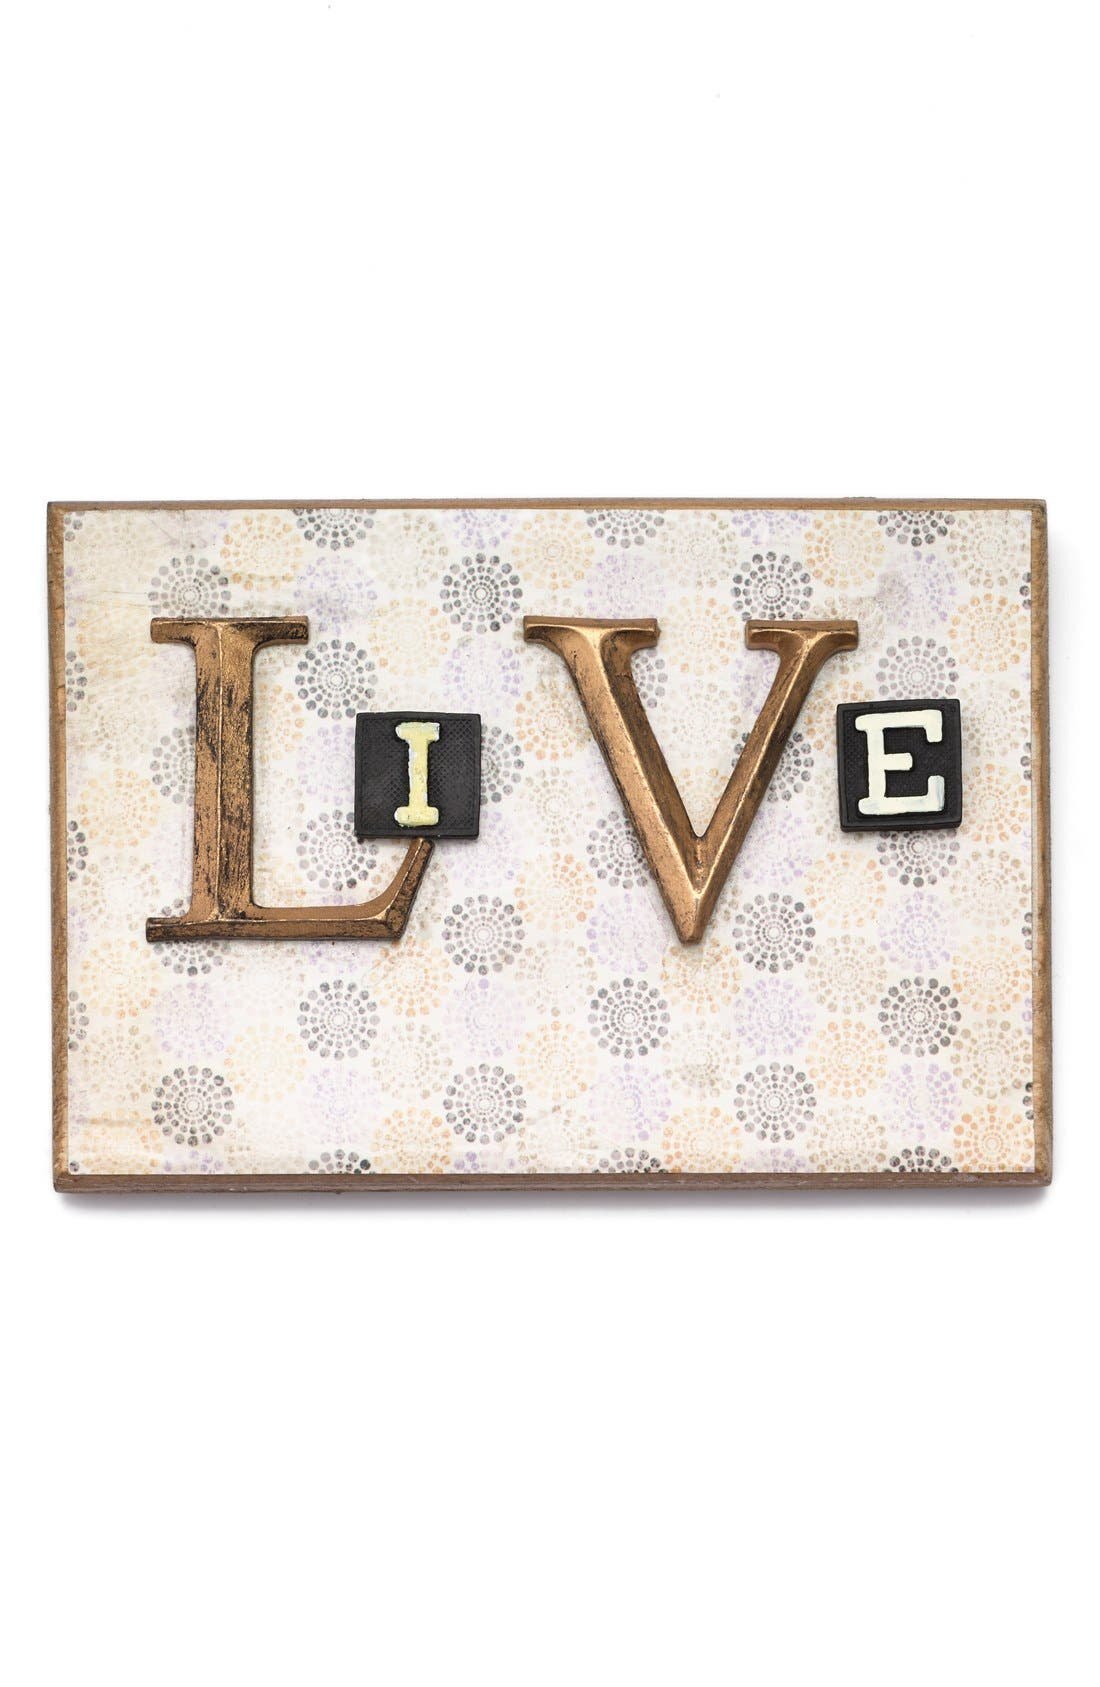 Alternate Image 1 Selected - Creative Co-Op 'Live' Embellished Wooden Wall Art